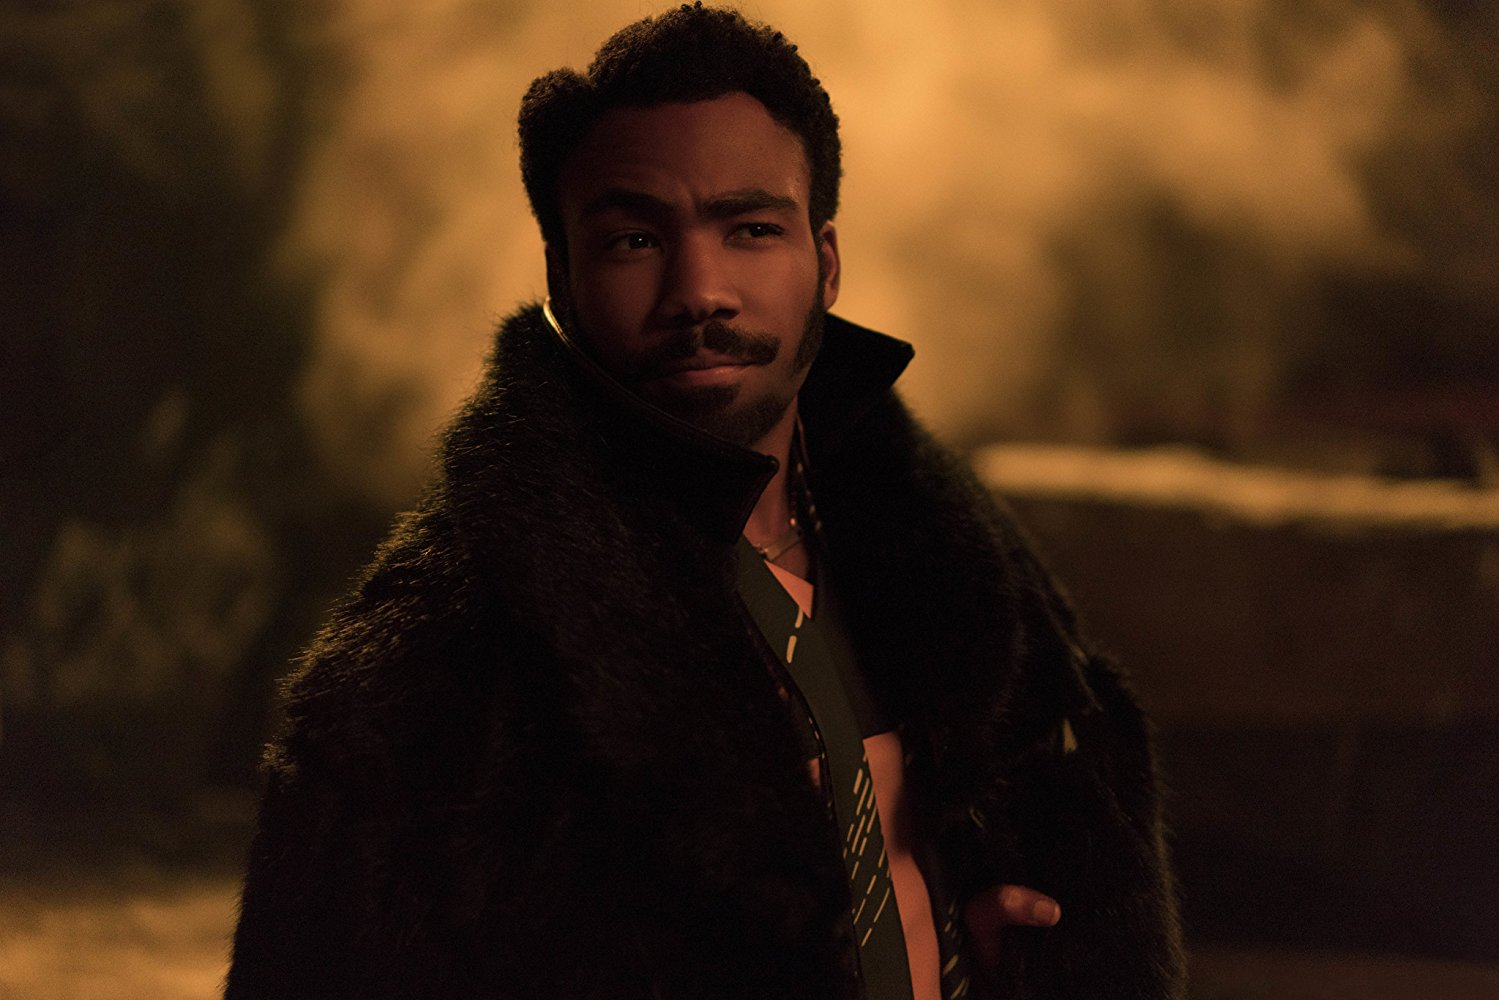 Lando Calrissian from Solo: A Star Wars Story